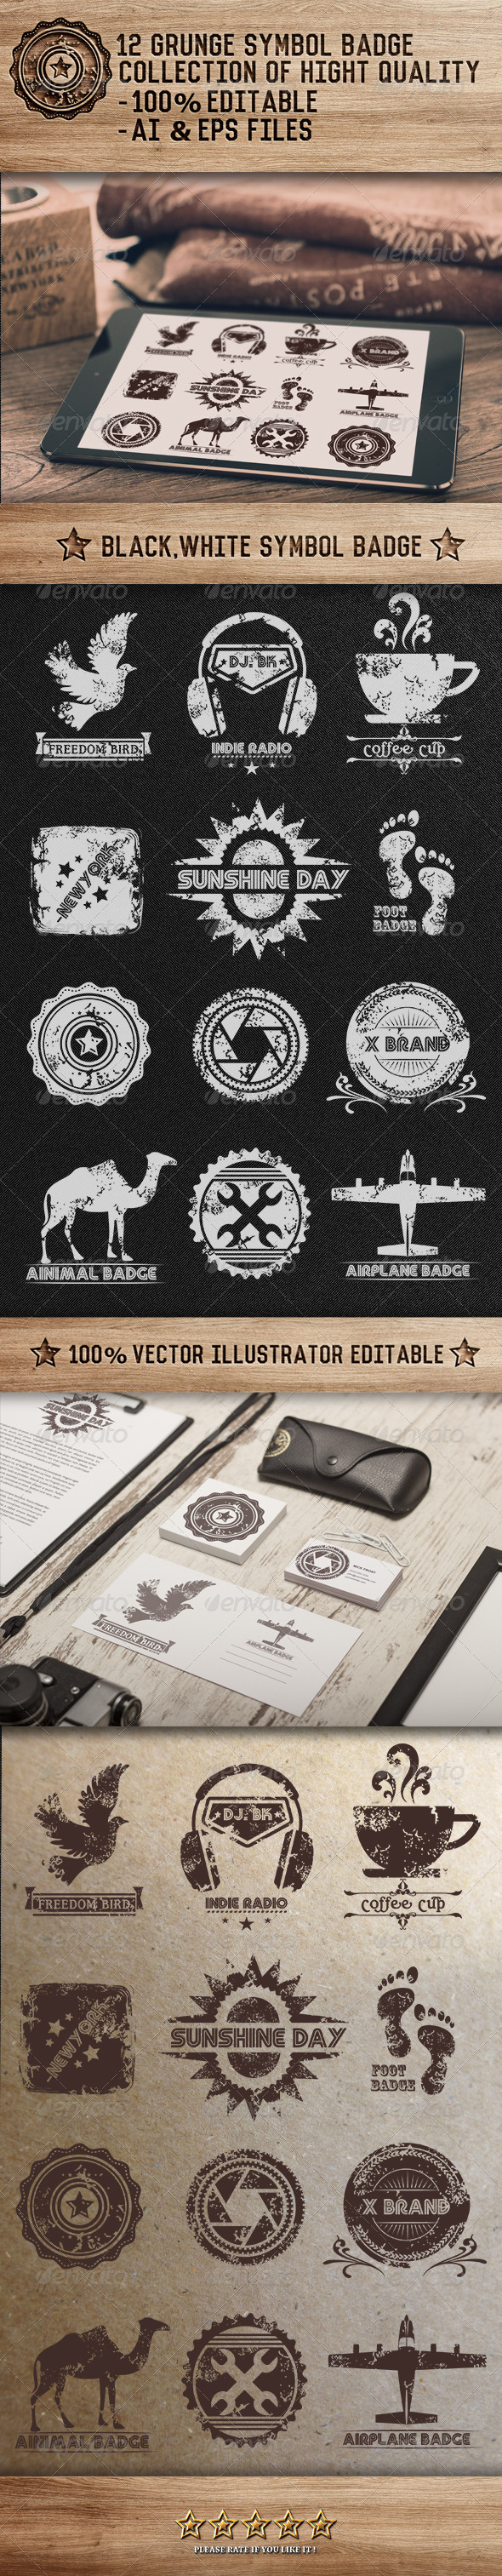 GraphicRiver 12 Grunge Symbol Badge 7731789